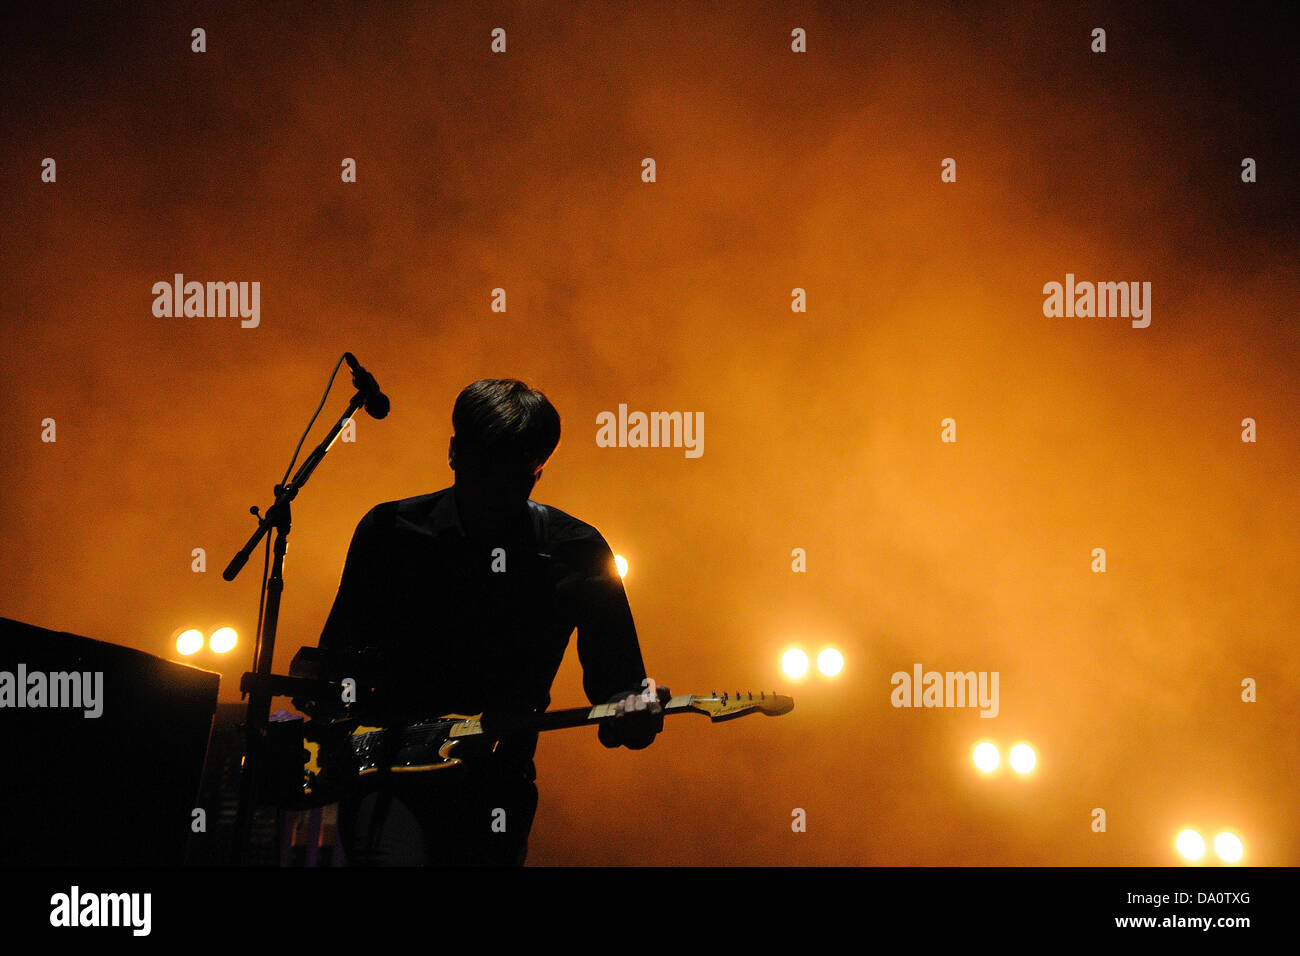 Barcelona May 23 Silhouette Of Ben Gibbard Vocalist And